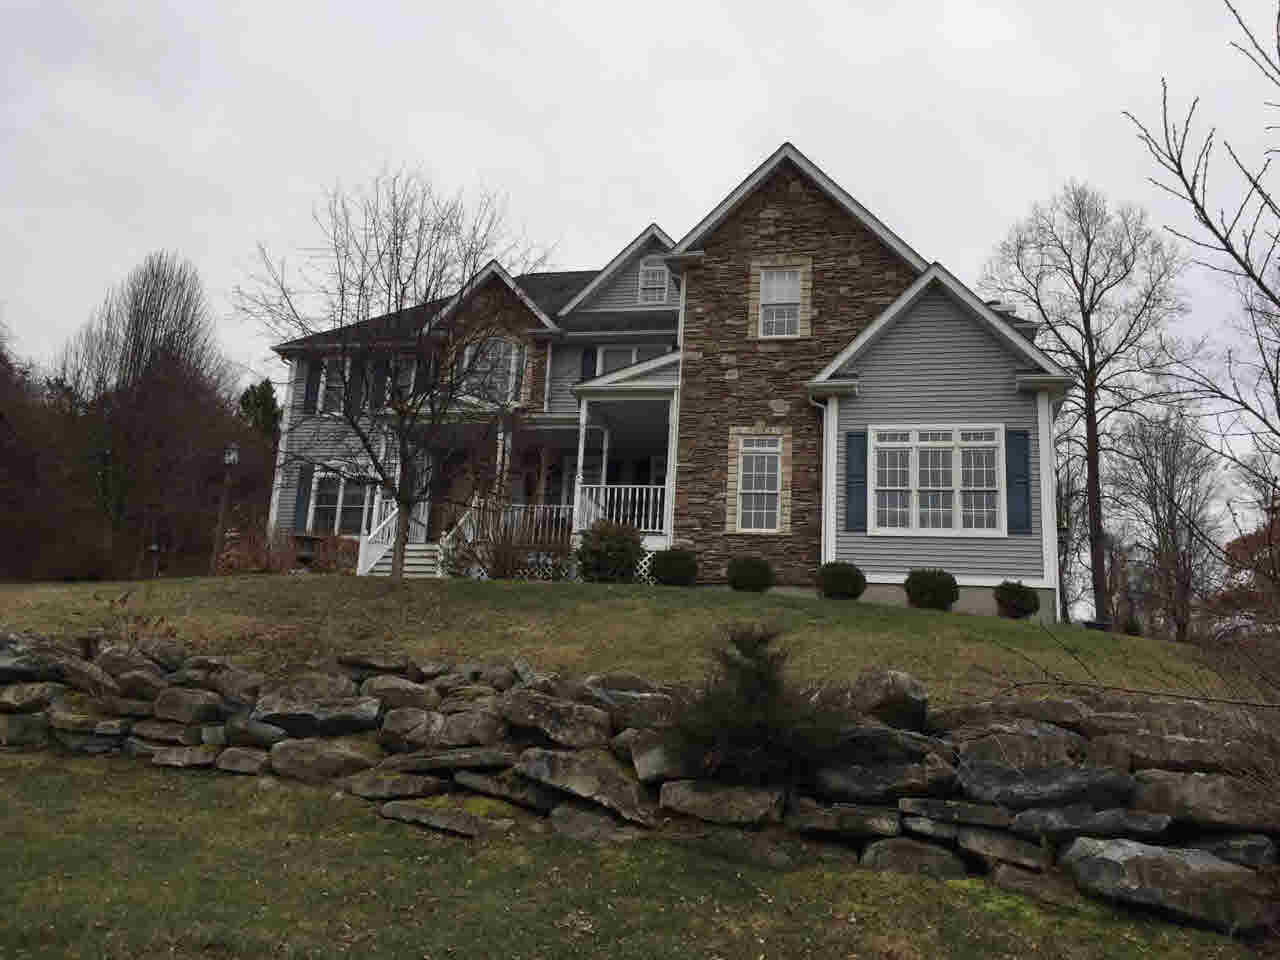 22 Winter Park Dr, East Fishkill, NY - USA (photo 1)